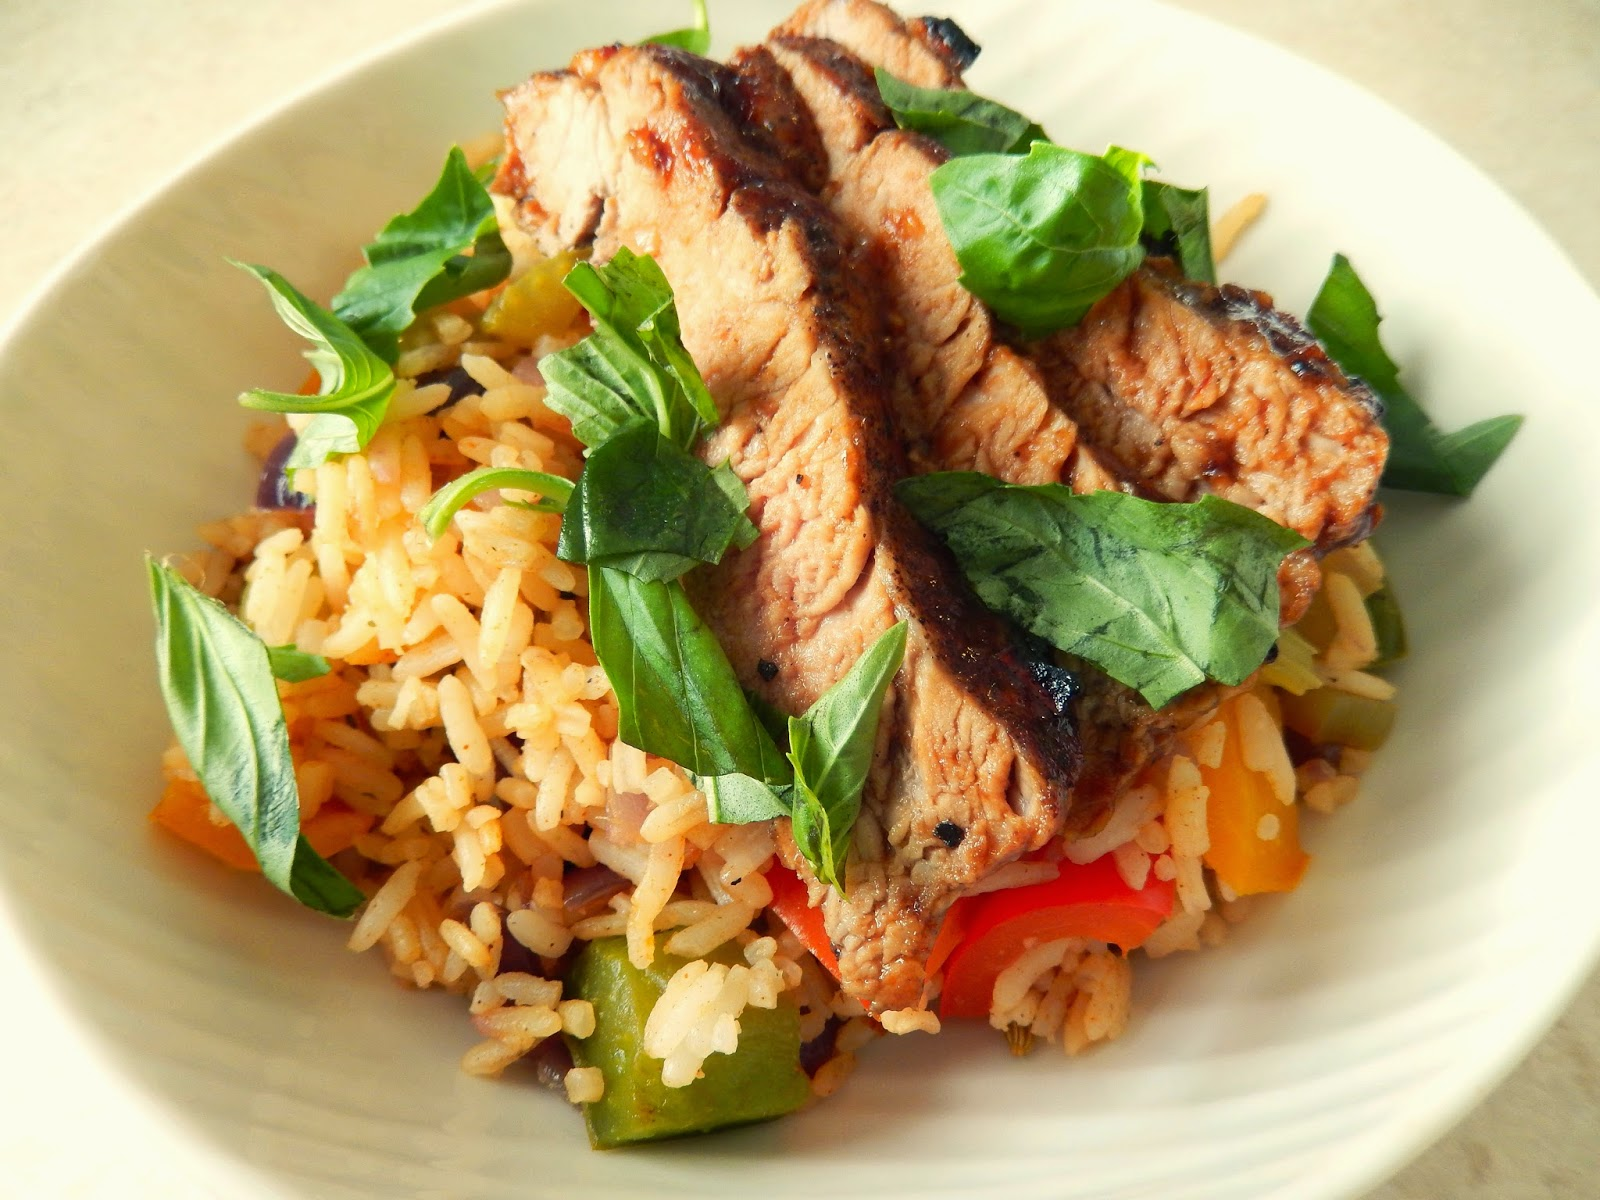 my back pages: jamie's fifteen minute meals - glazed pork tenderloin with cajun-style pepper ...